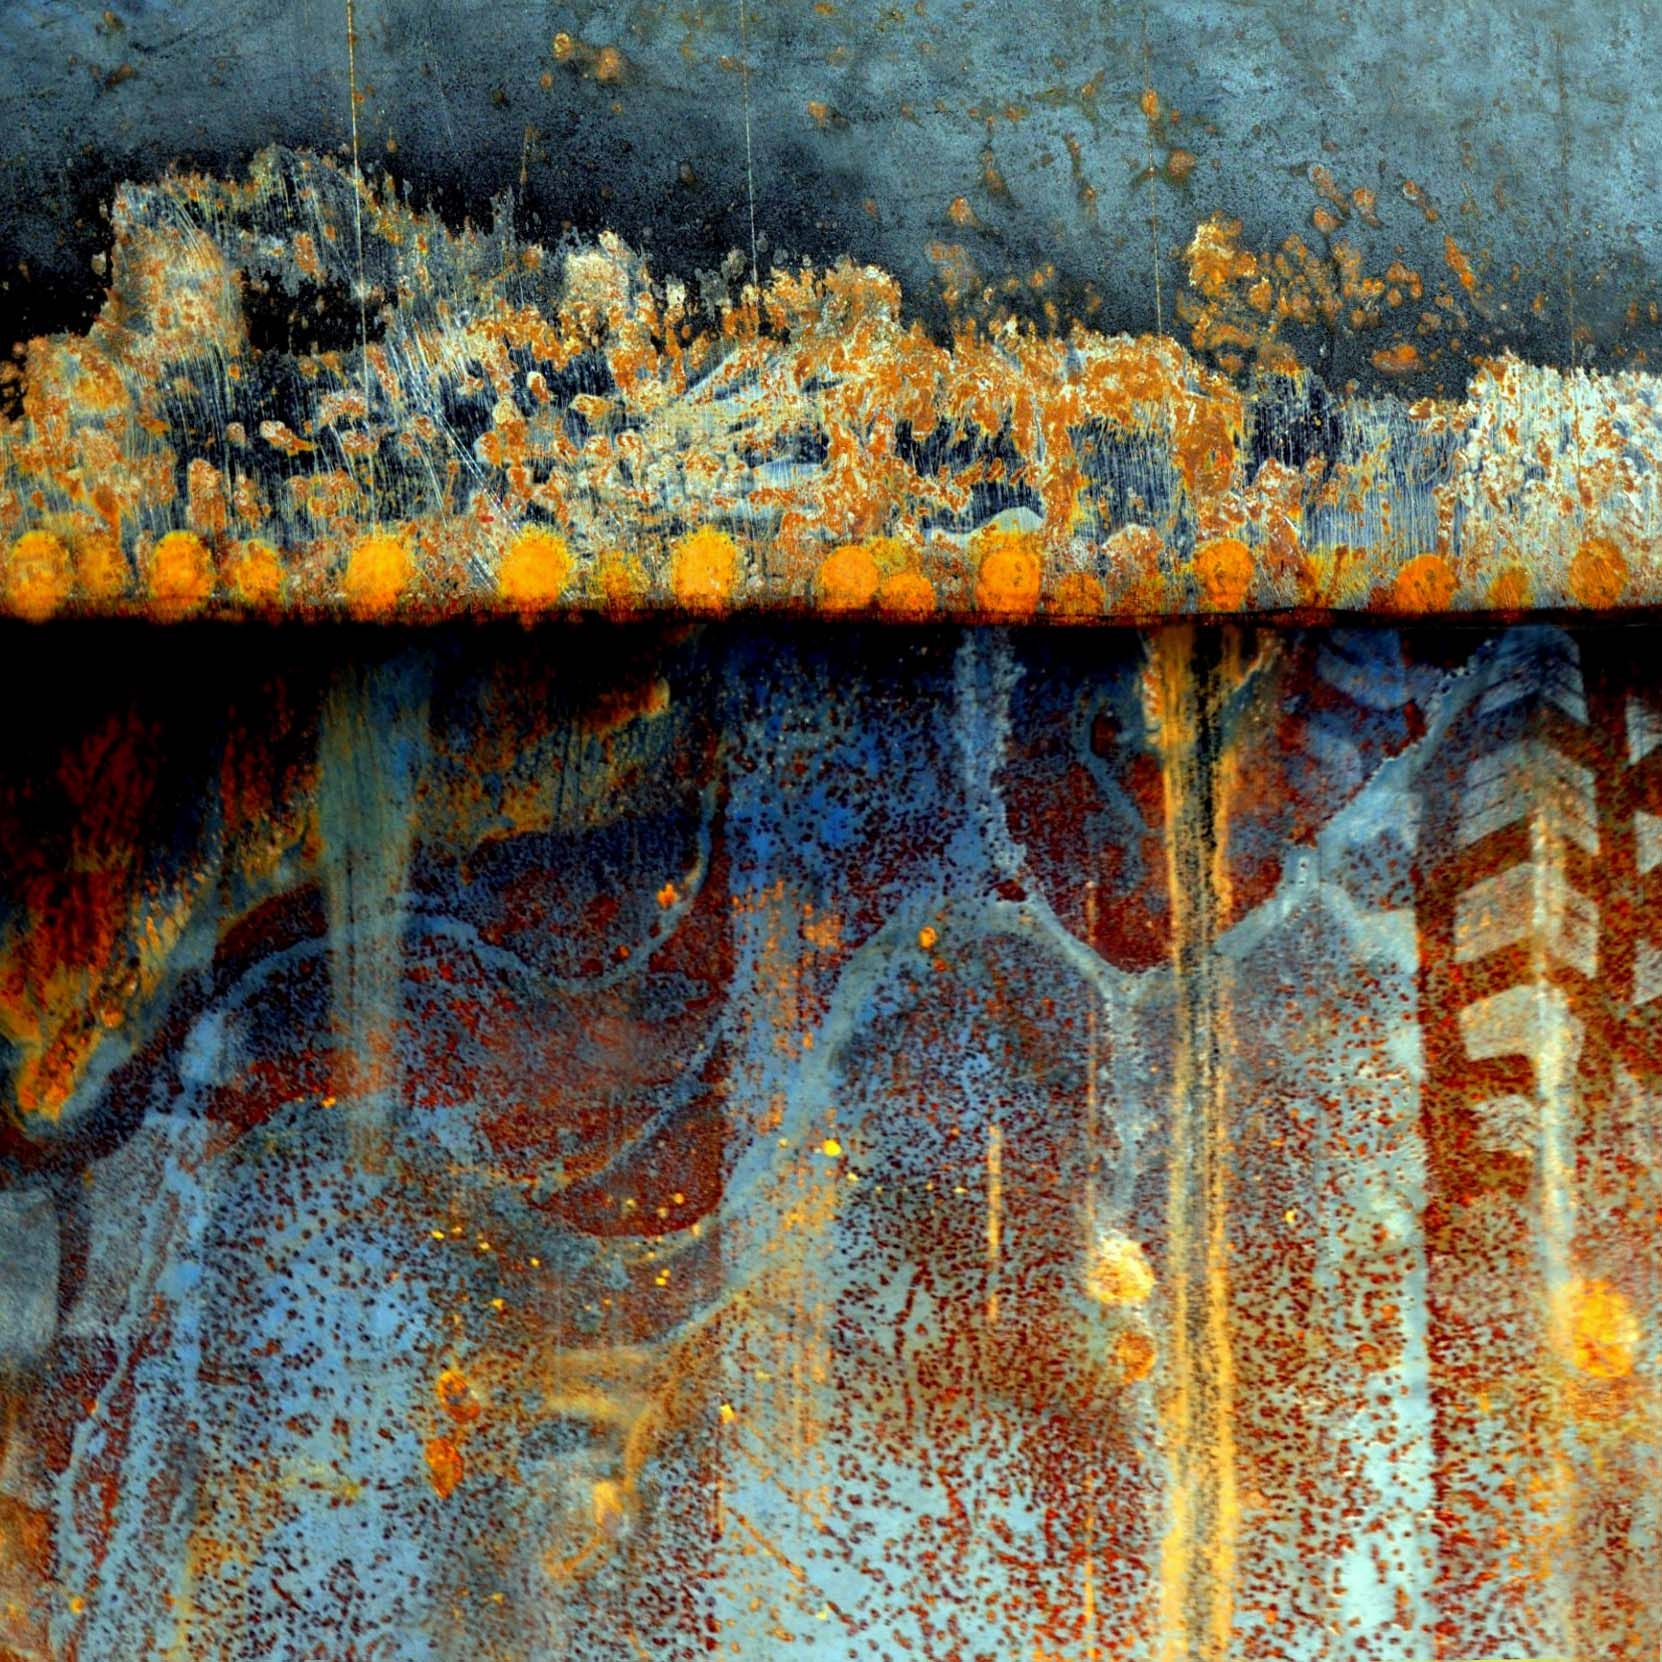 'Evening Spirits', www.LuAnnOstergaard.com. Abstract digital collage in rust and blue.